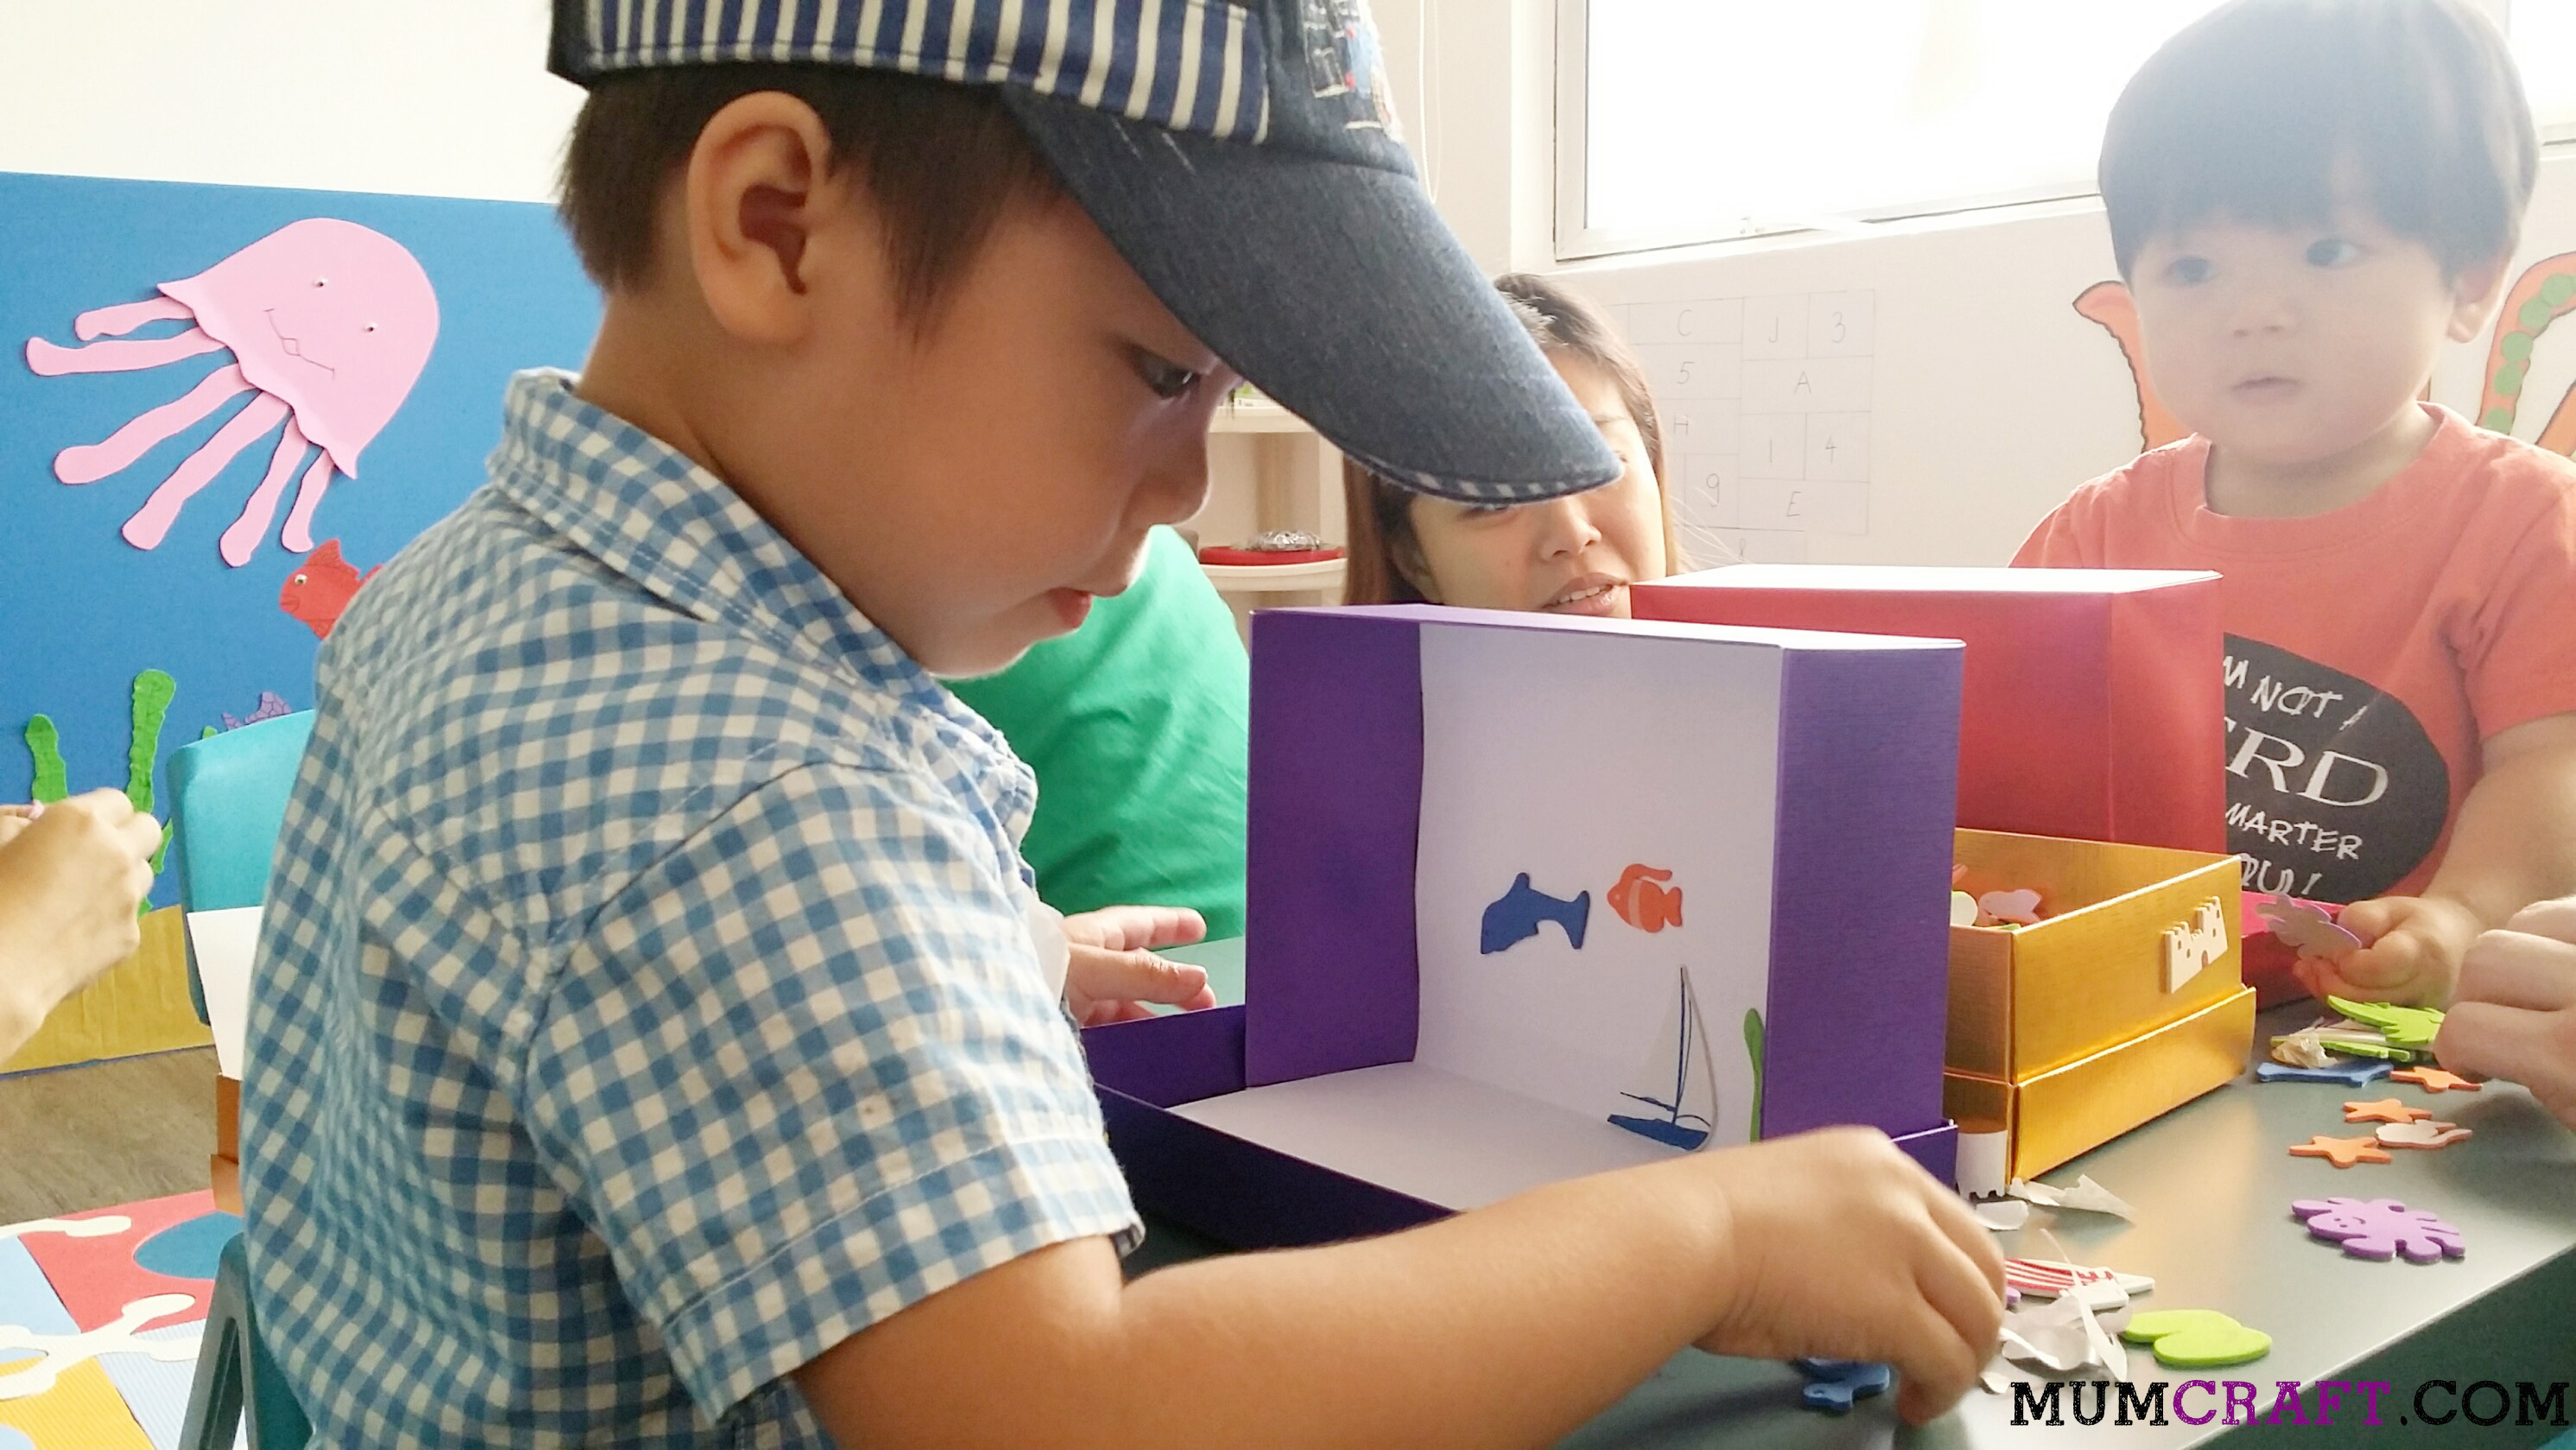 Making his own aquarium with foam stickers.